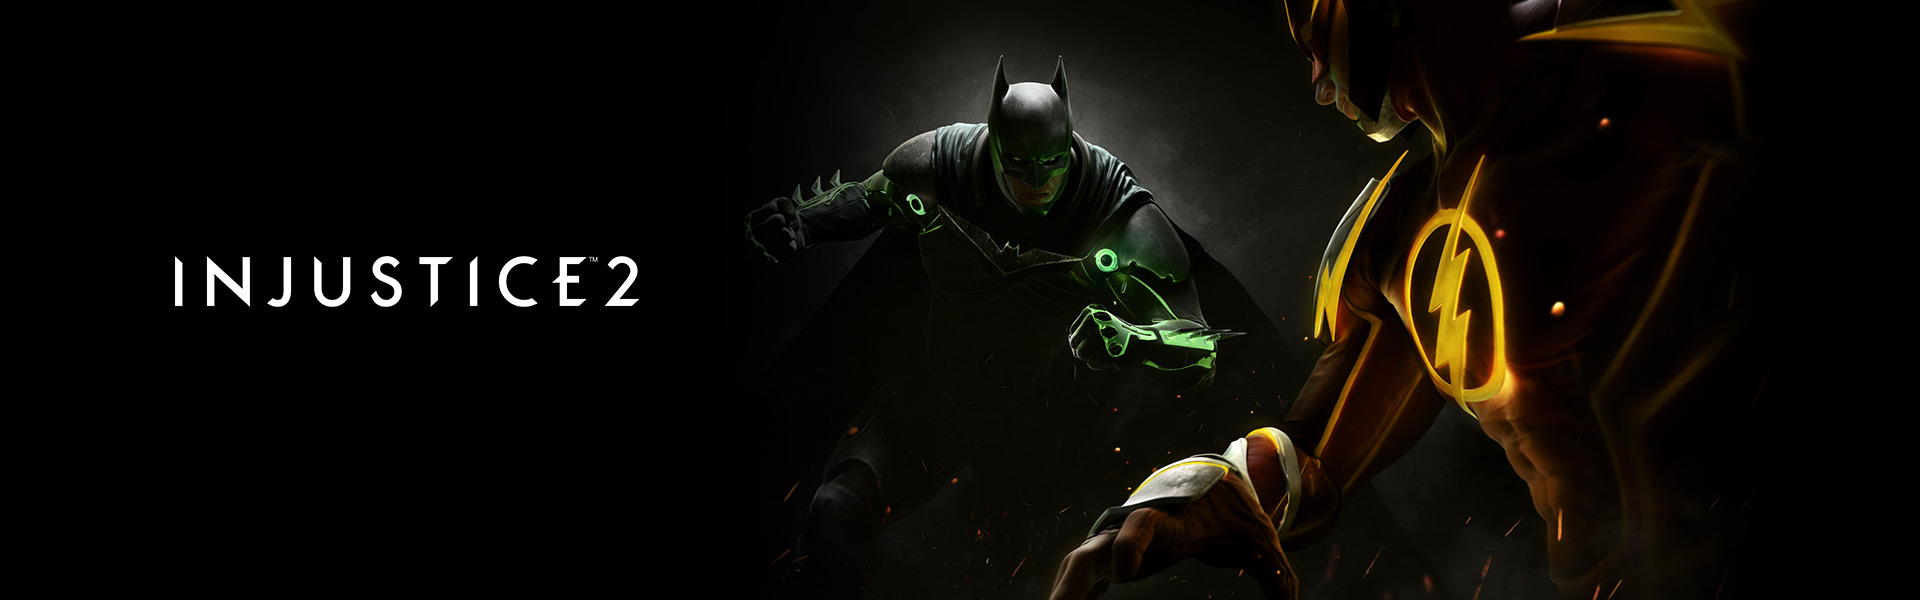 Injustice 2, image sombre de Batman et The Flash se battant l'un contre l'autre